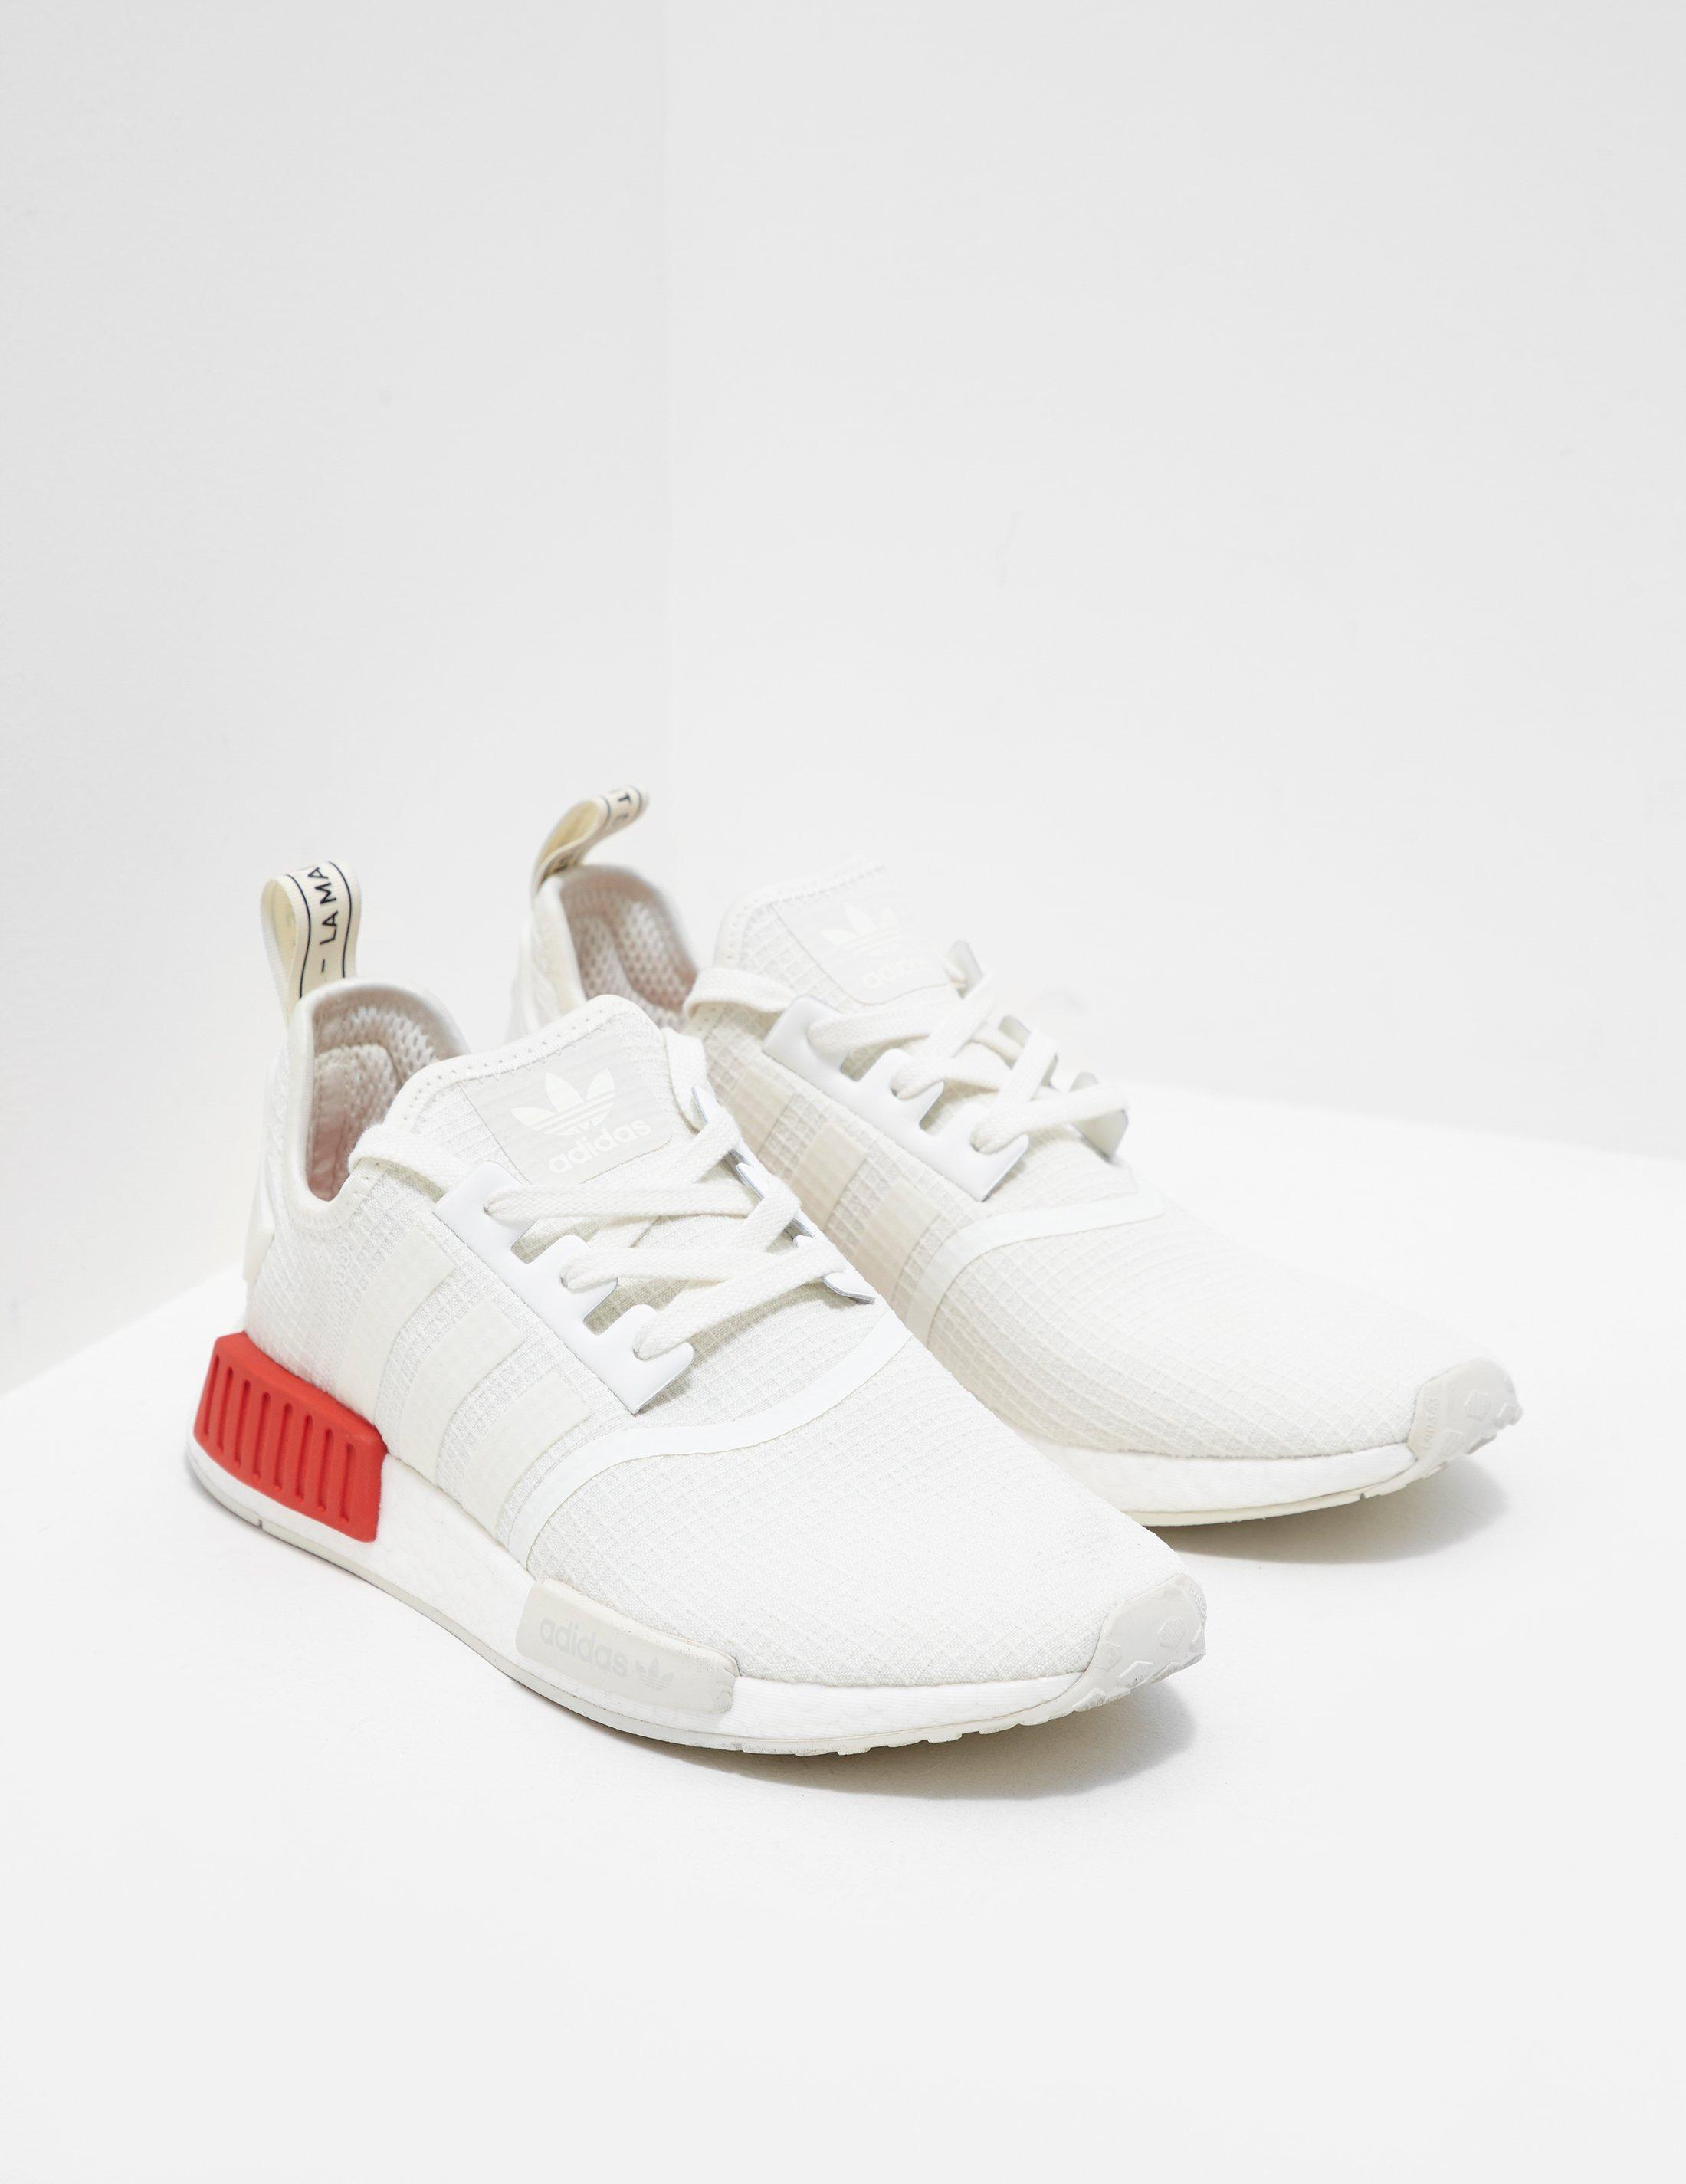 7903ba5bc34378 Lyst - adidas Originals Nmd R1 Ripstop White in White for Men